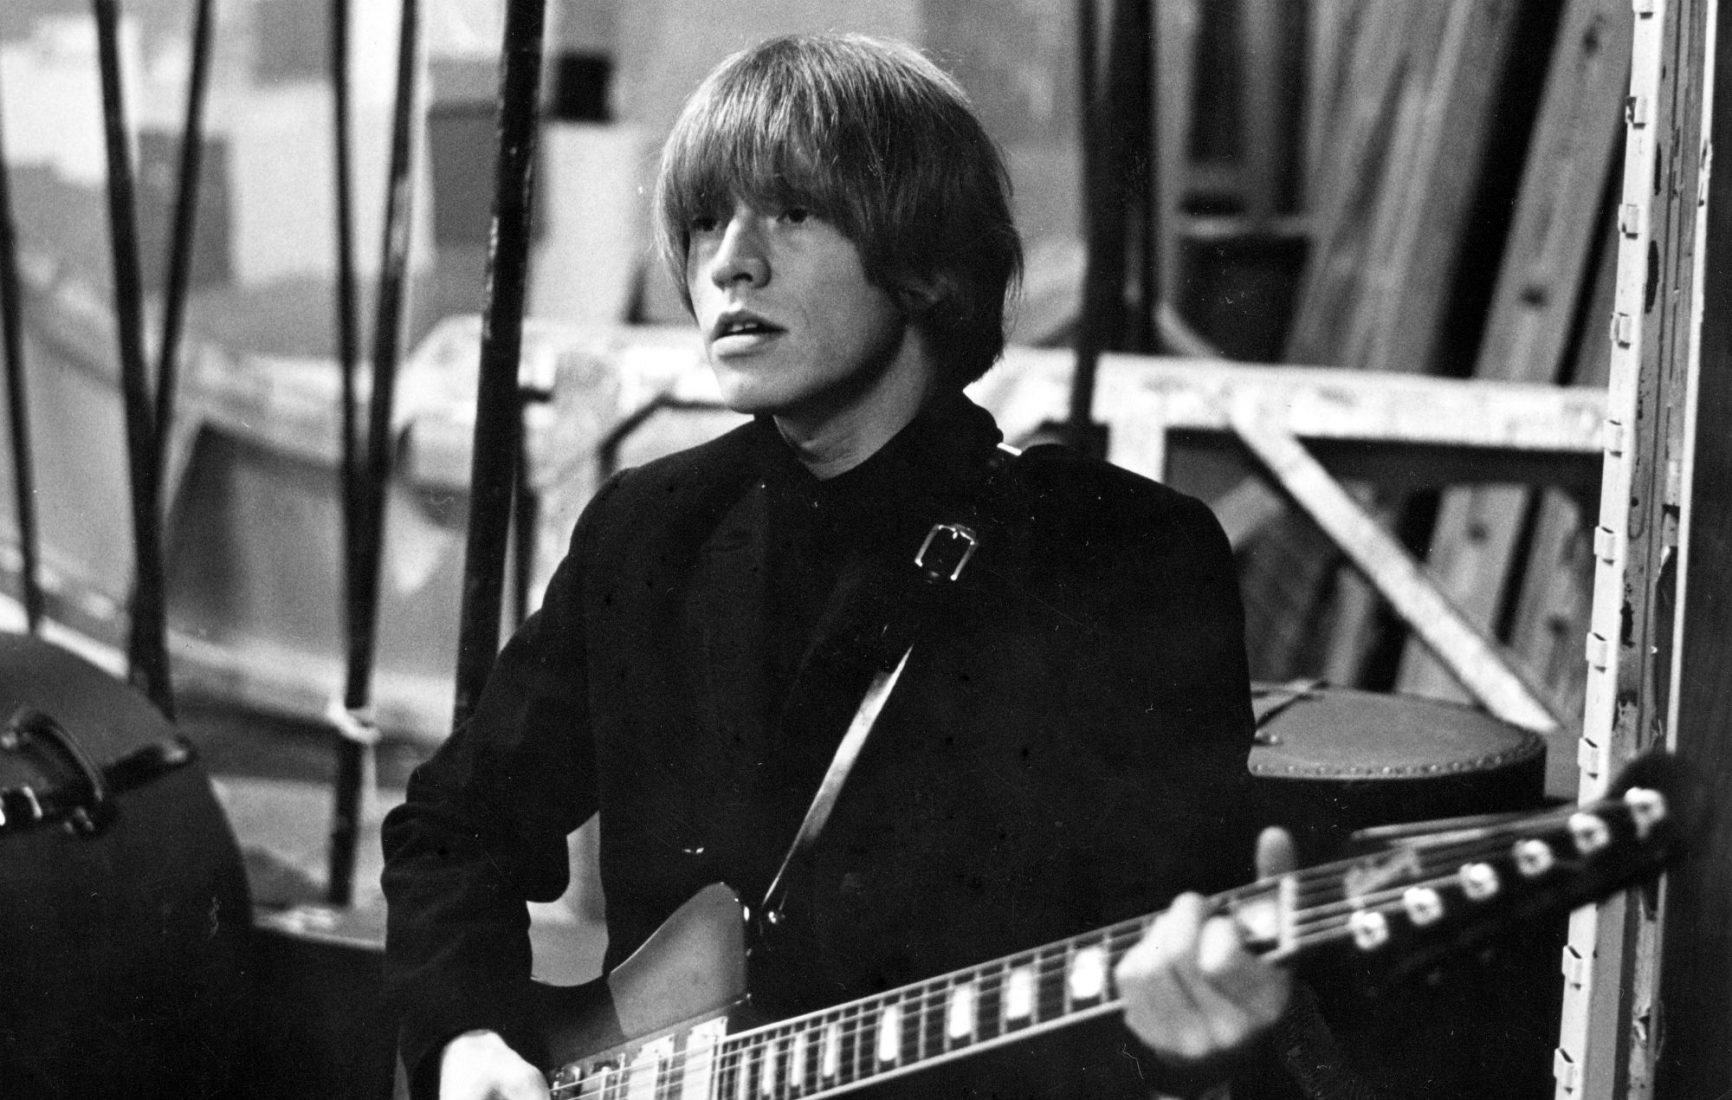 Danny Garcia's New Documentary Examines The Death of Rolling Stone Brian Jones